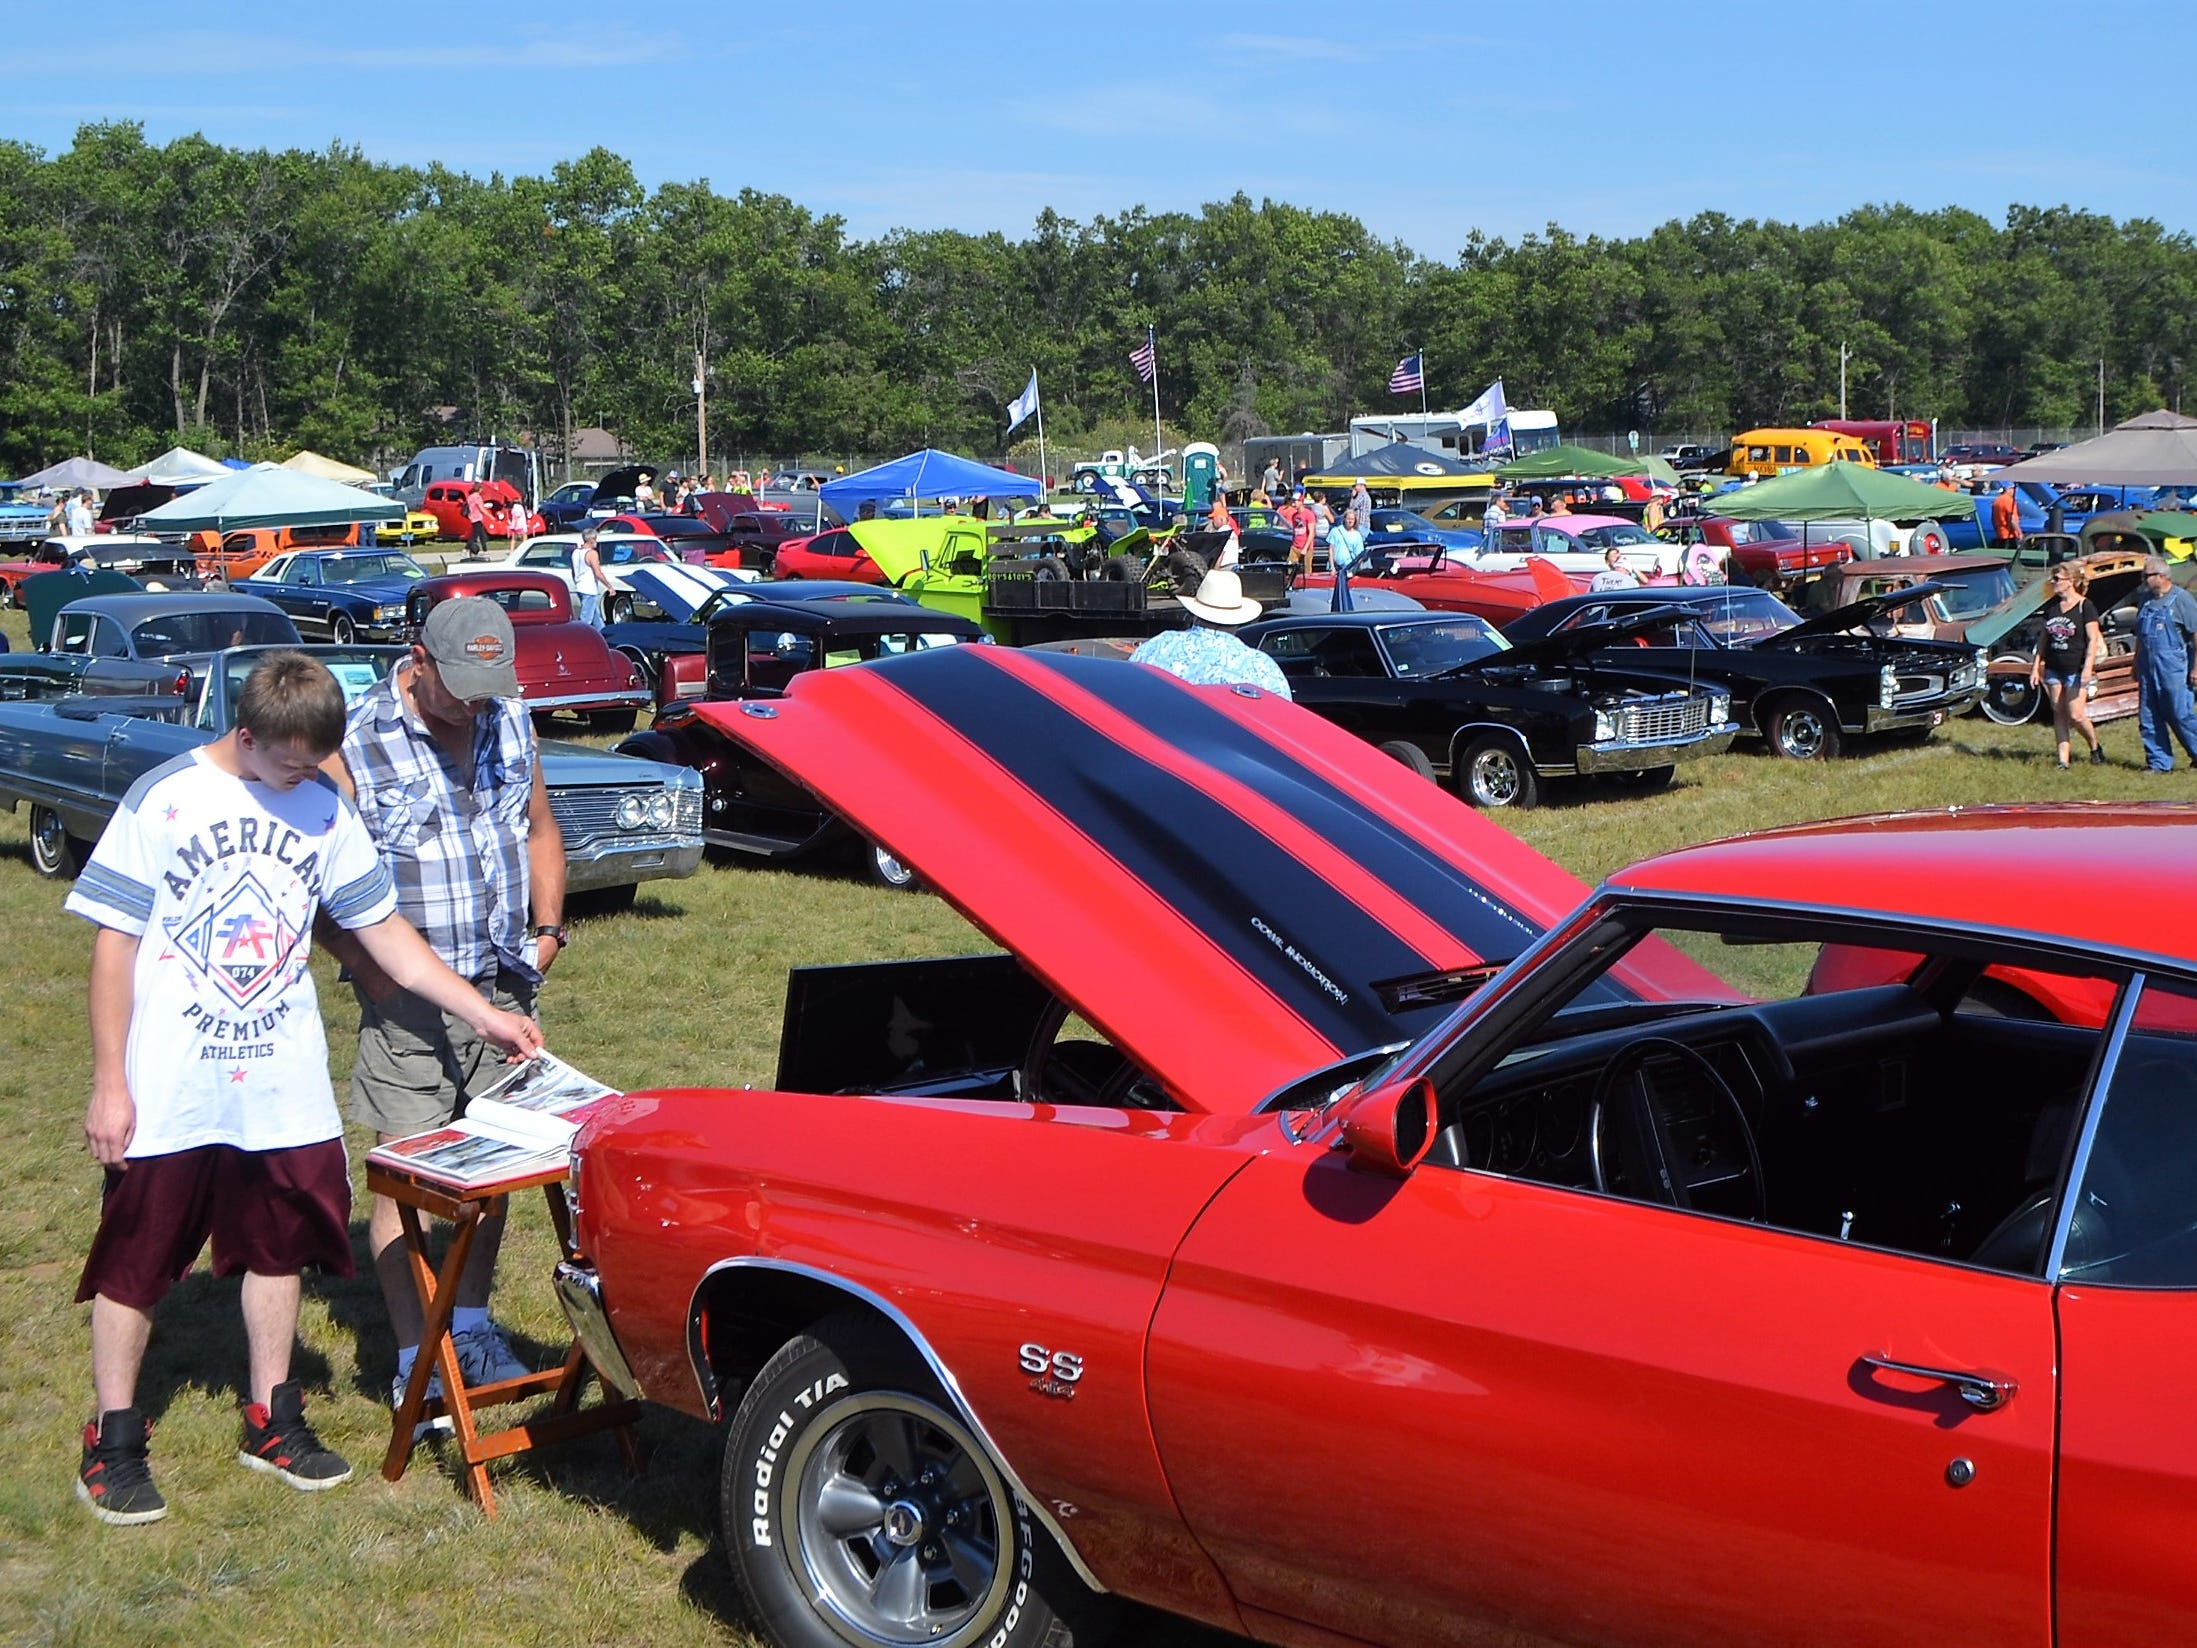 Jeff and John Hanna look over the booklet of information on the 1971 Chevelle at the Oconto Fly-in, Car & Tractor Show on Sept. 15 at the Oconto-J. Douglas Bake Municipal Airport. Nearly 300 cars were exhibited.